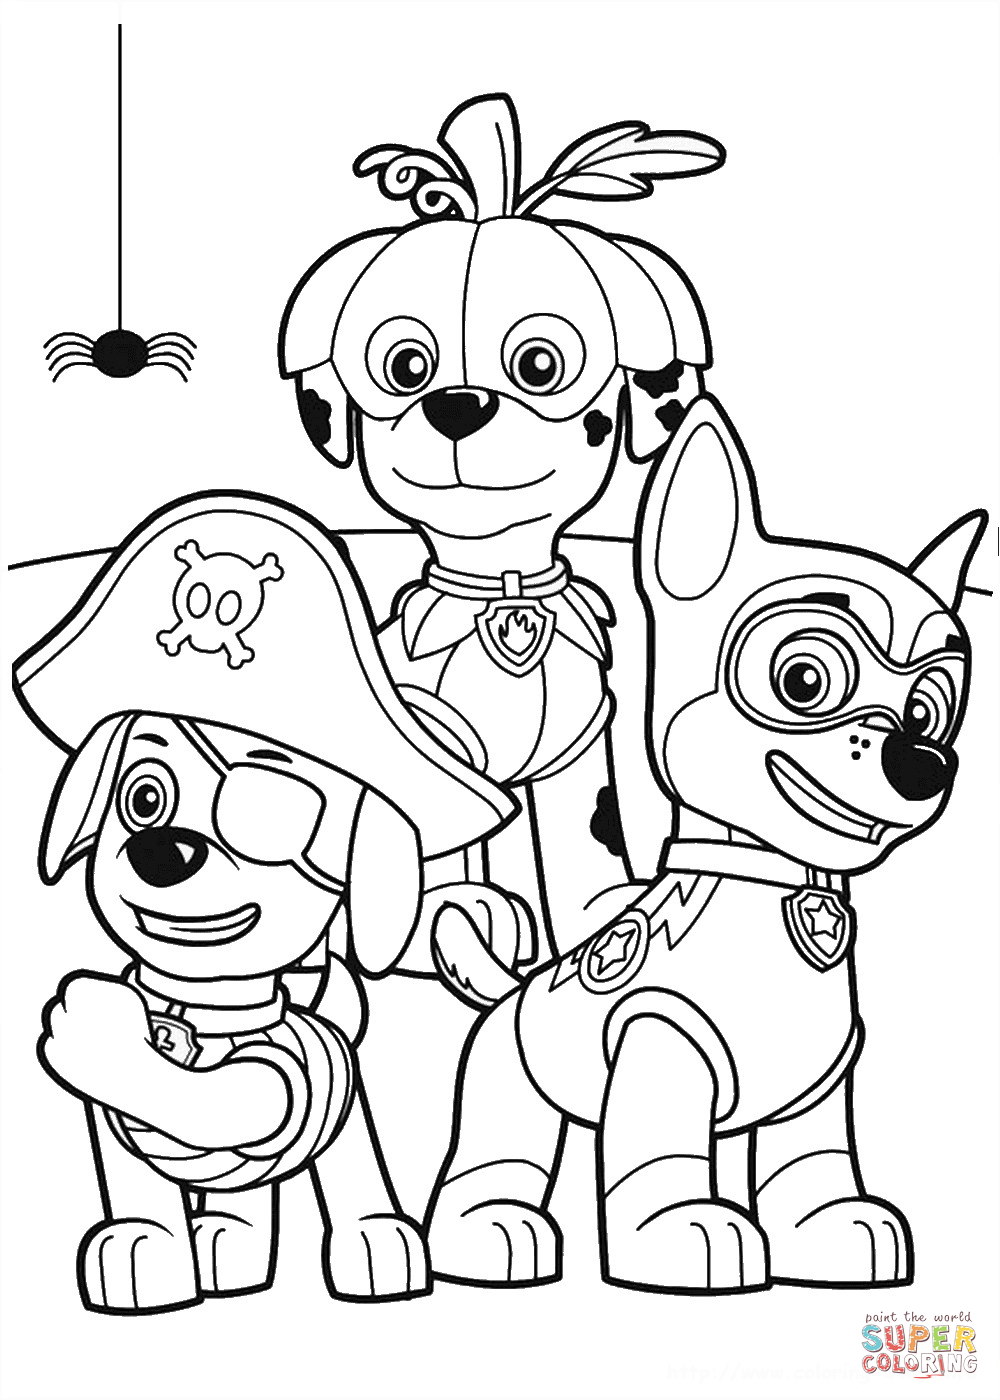 Paw patrol halloween clipart clipart black and white stock Paw Patrol Halloween Party coloring page | Free Printable Coloring ... clipart black and white stock